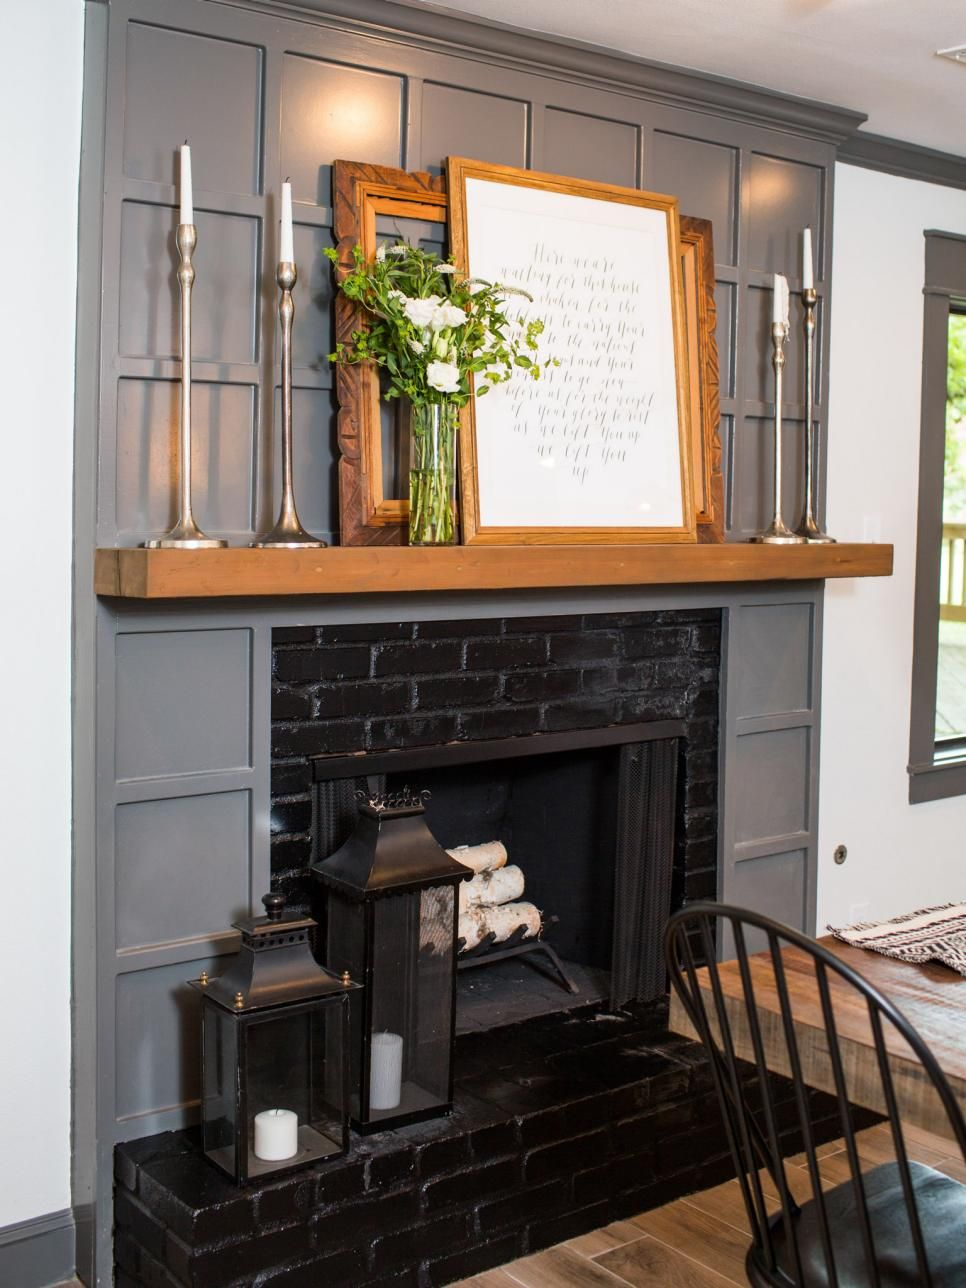 How To Decorate A Brick Fireplace Fixer Upper Old World Charm For Newlyweds Fixer Upper